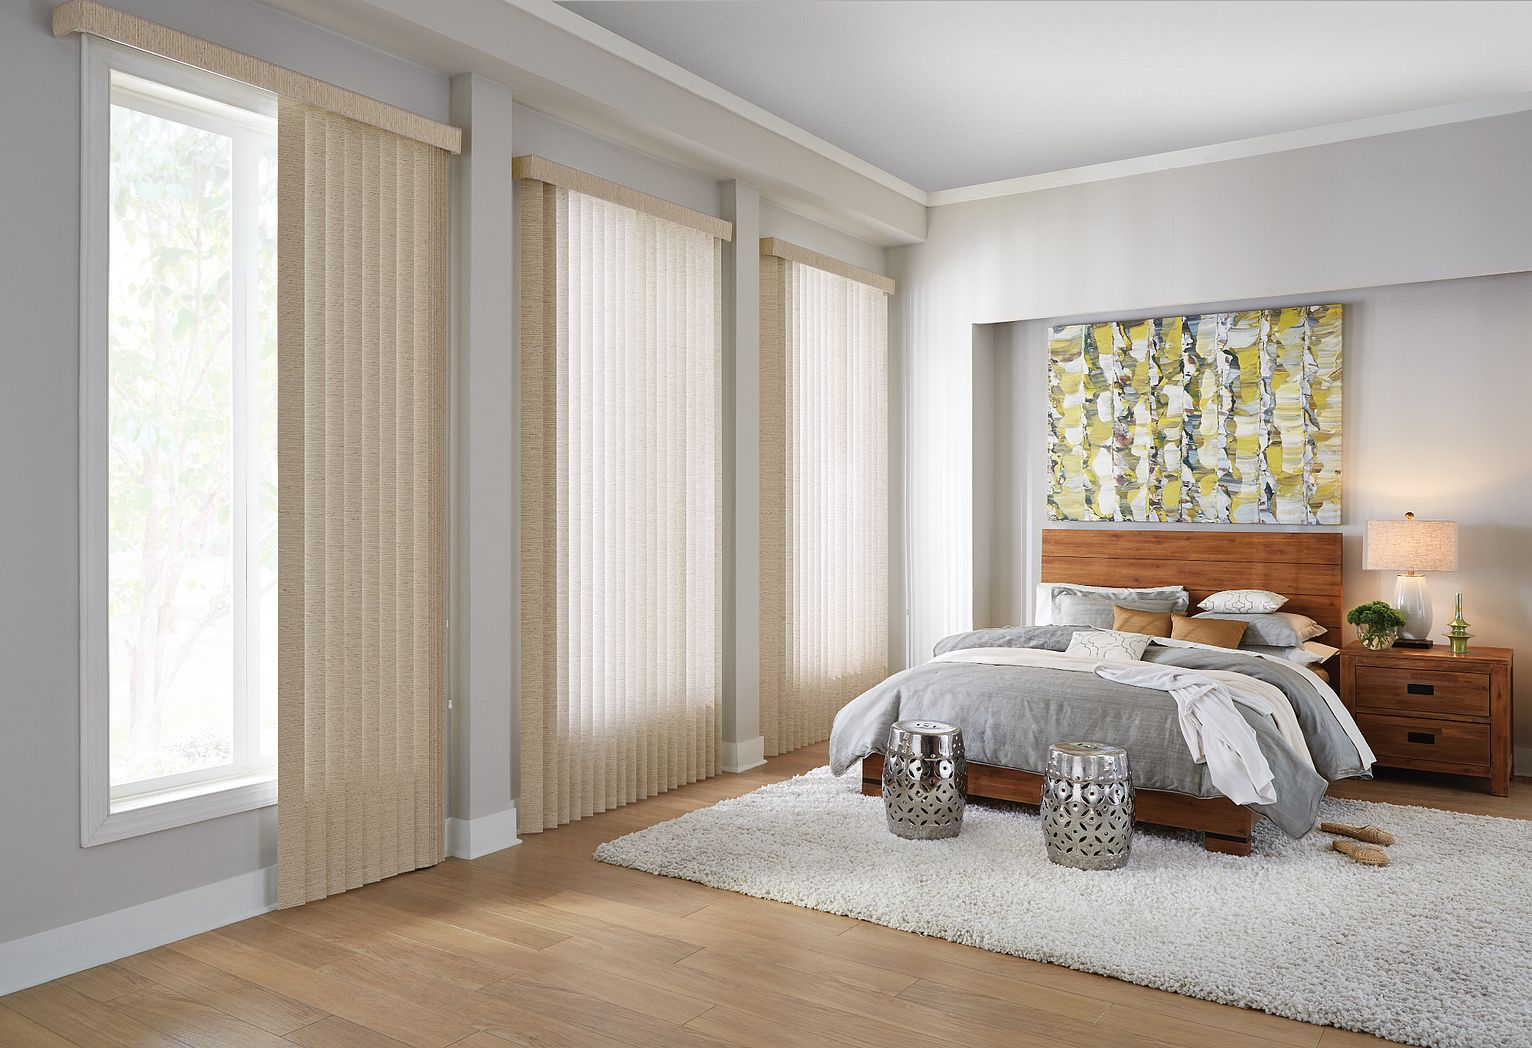 Fabric Vertical Blinds with Cord and Chain Control and Square Corner Valance: Keepsake, Golden Years 0172